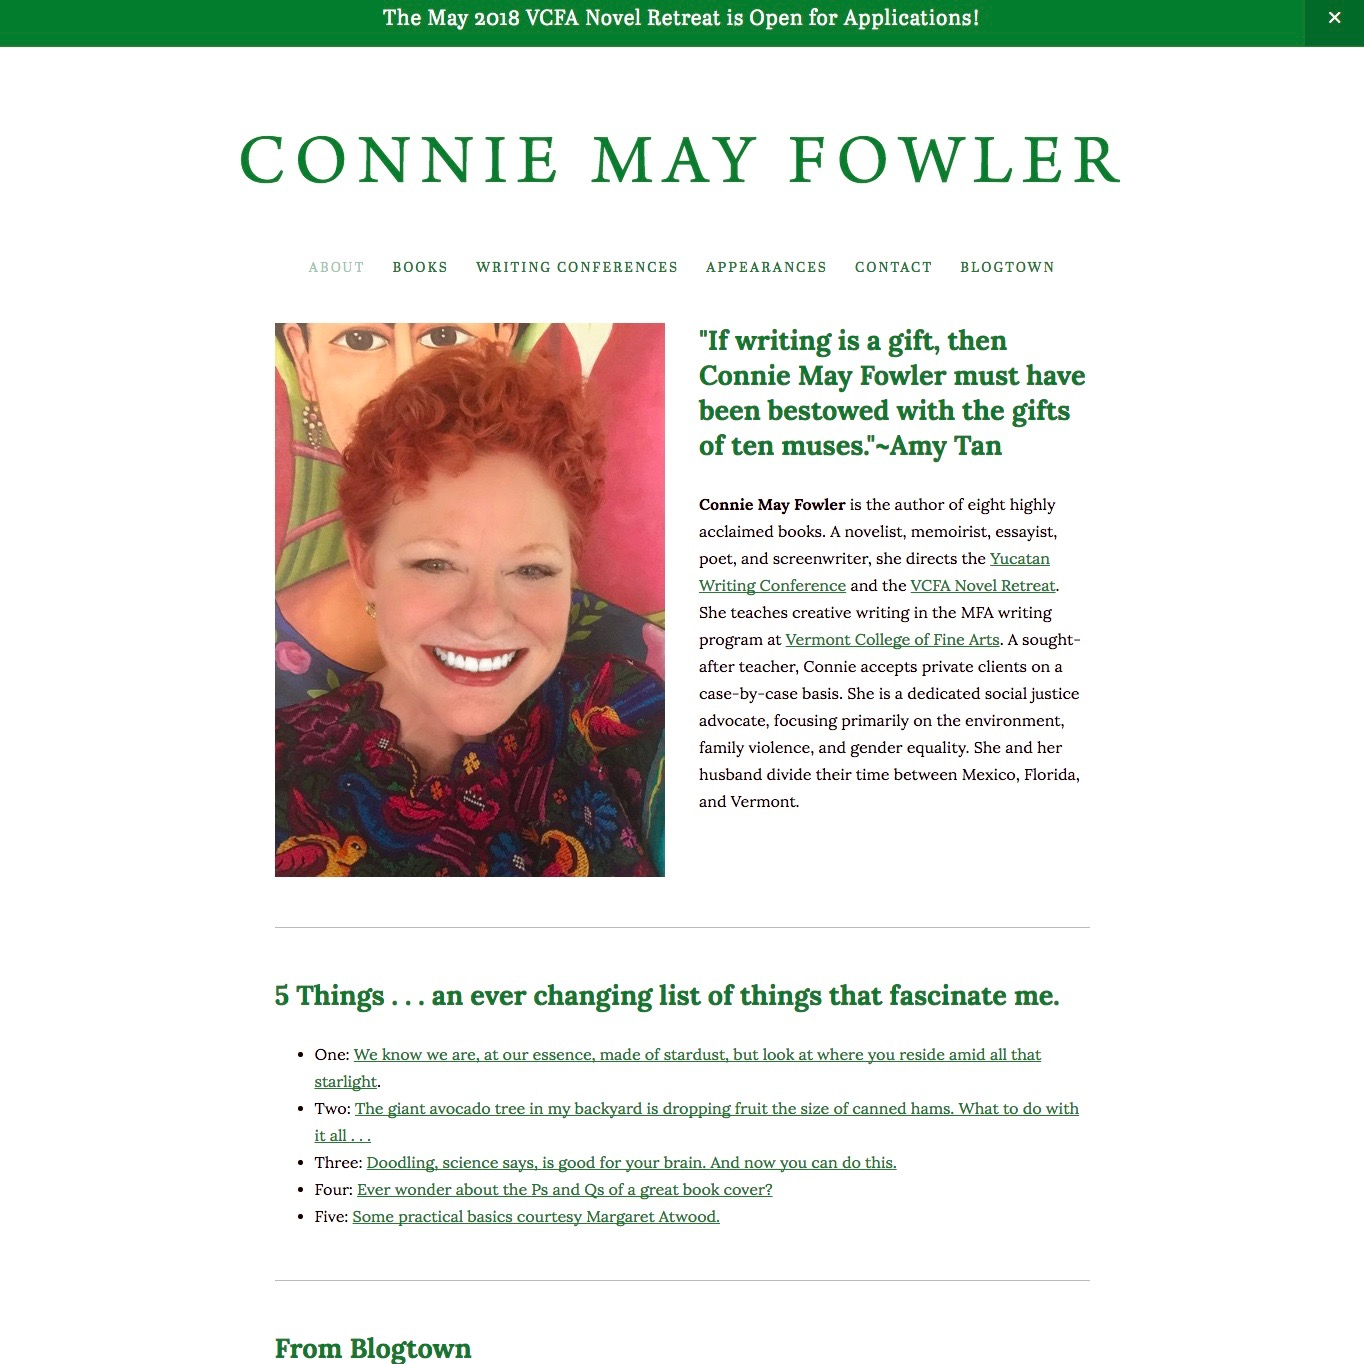 Connie May Fowler